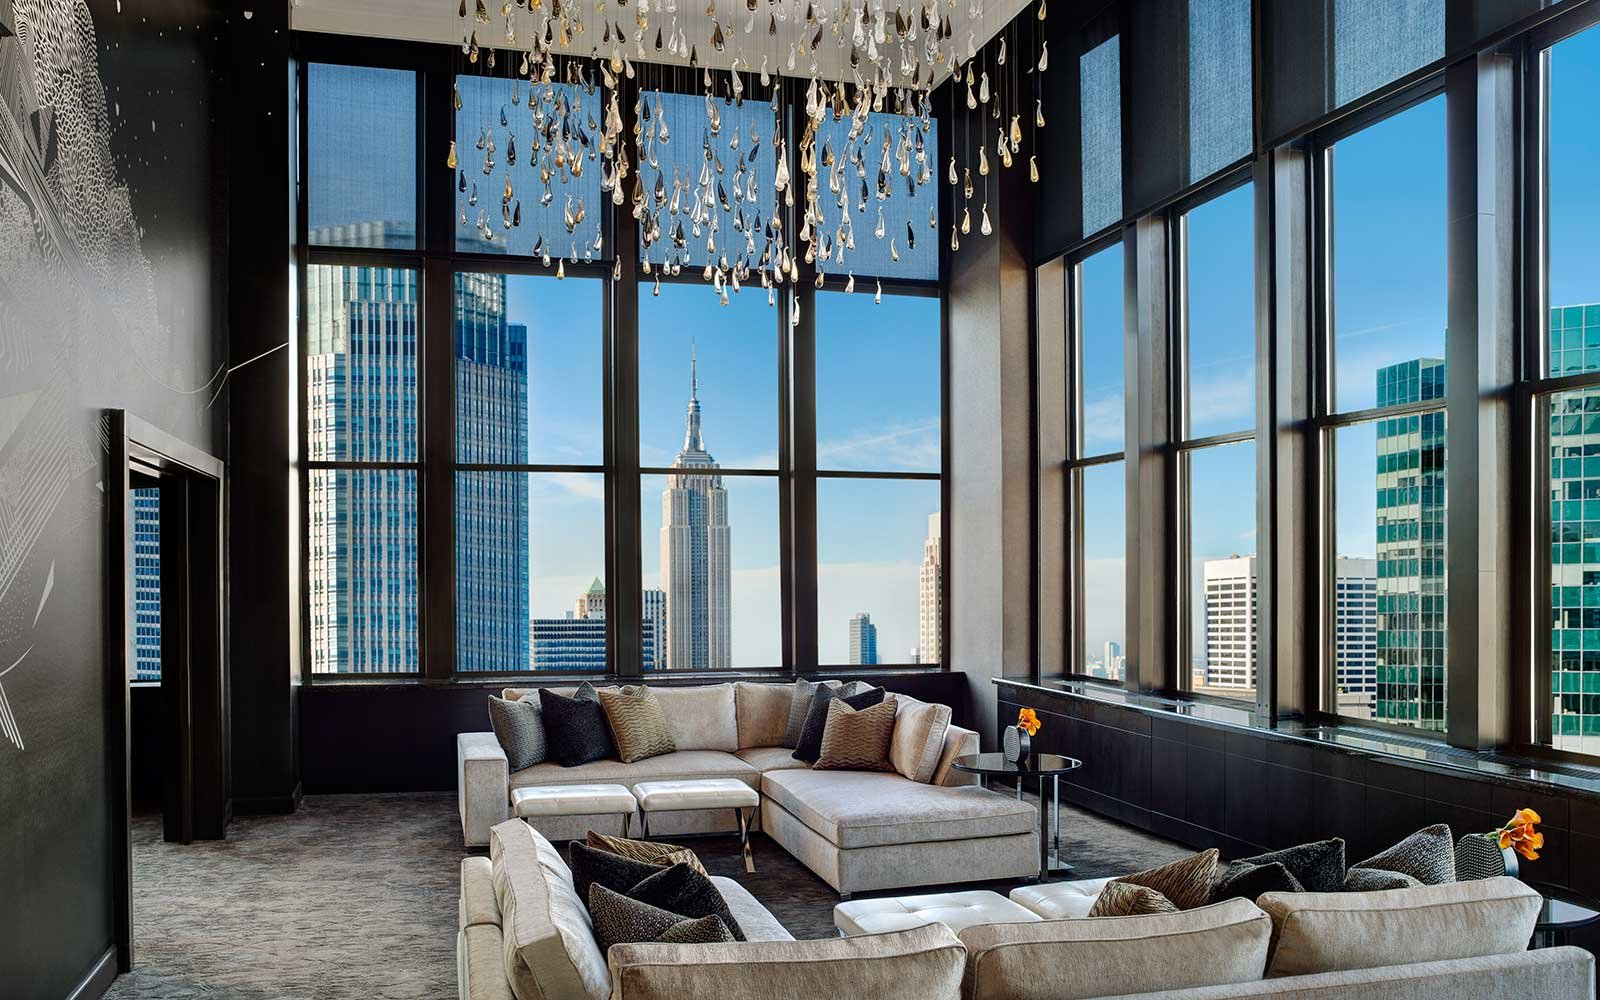 10. Lotte New York Palace